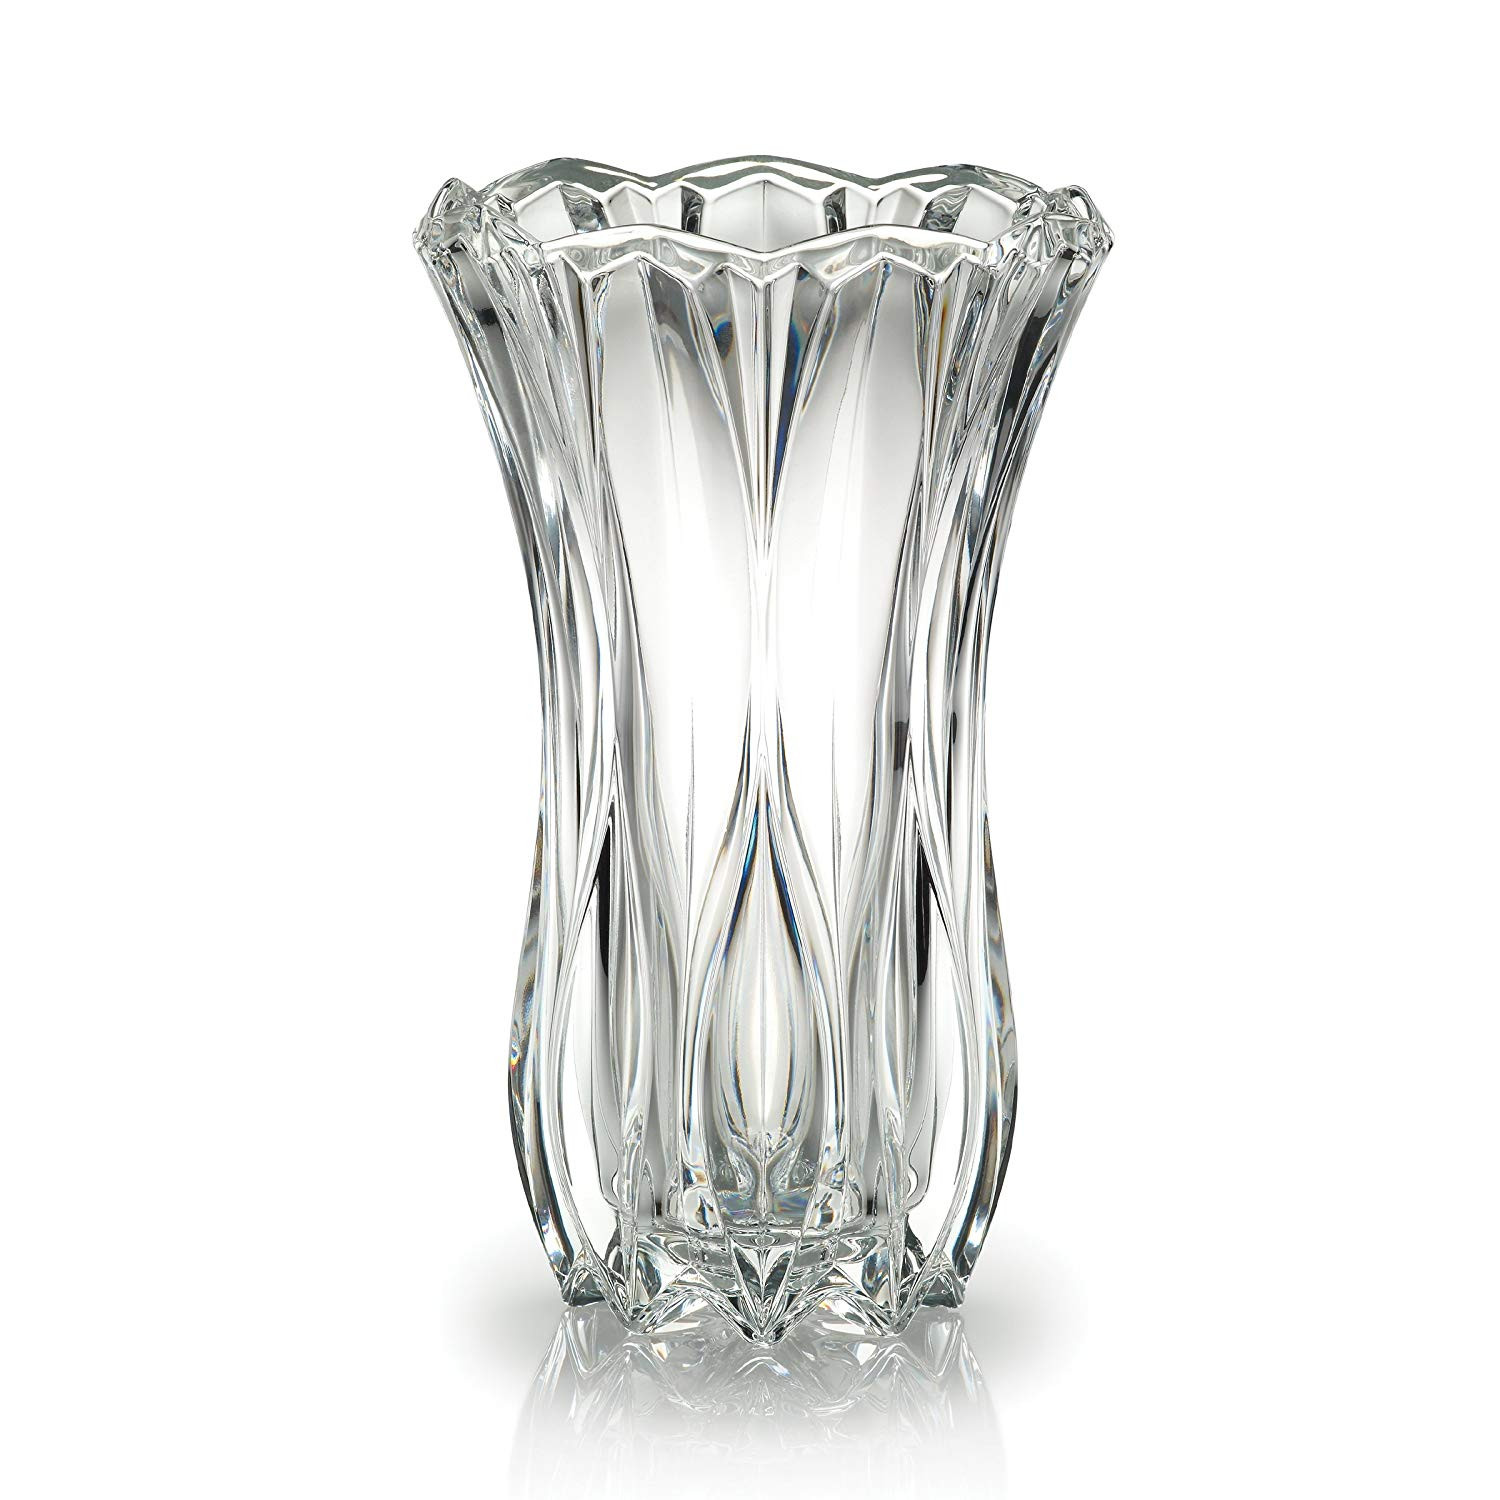 Marquis by Waterford Markham Vase 9 Of Amazon Com Celebrations by Mikasa Blossom Crystal Vase 12 Inch for Amazon Com Celebrations by Mikasa Blossom Crystal Vase 12 Inch Home Kitchen